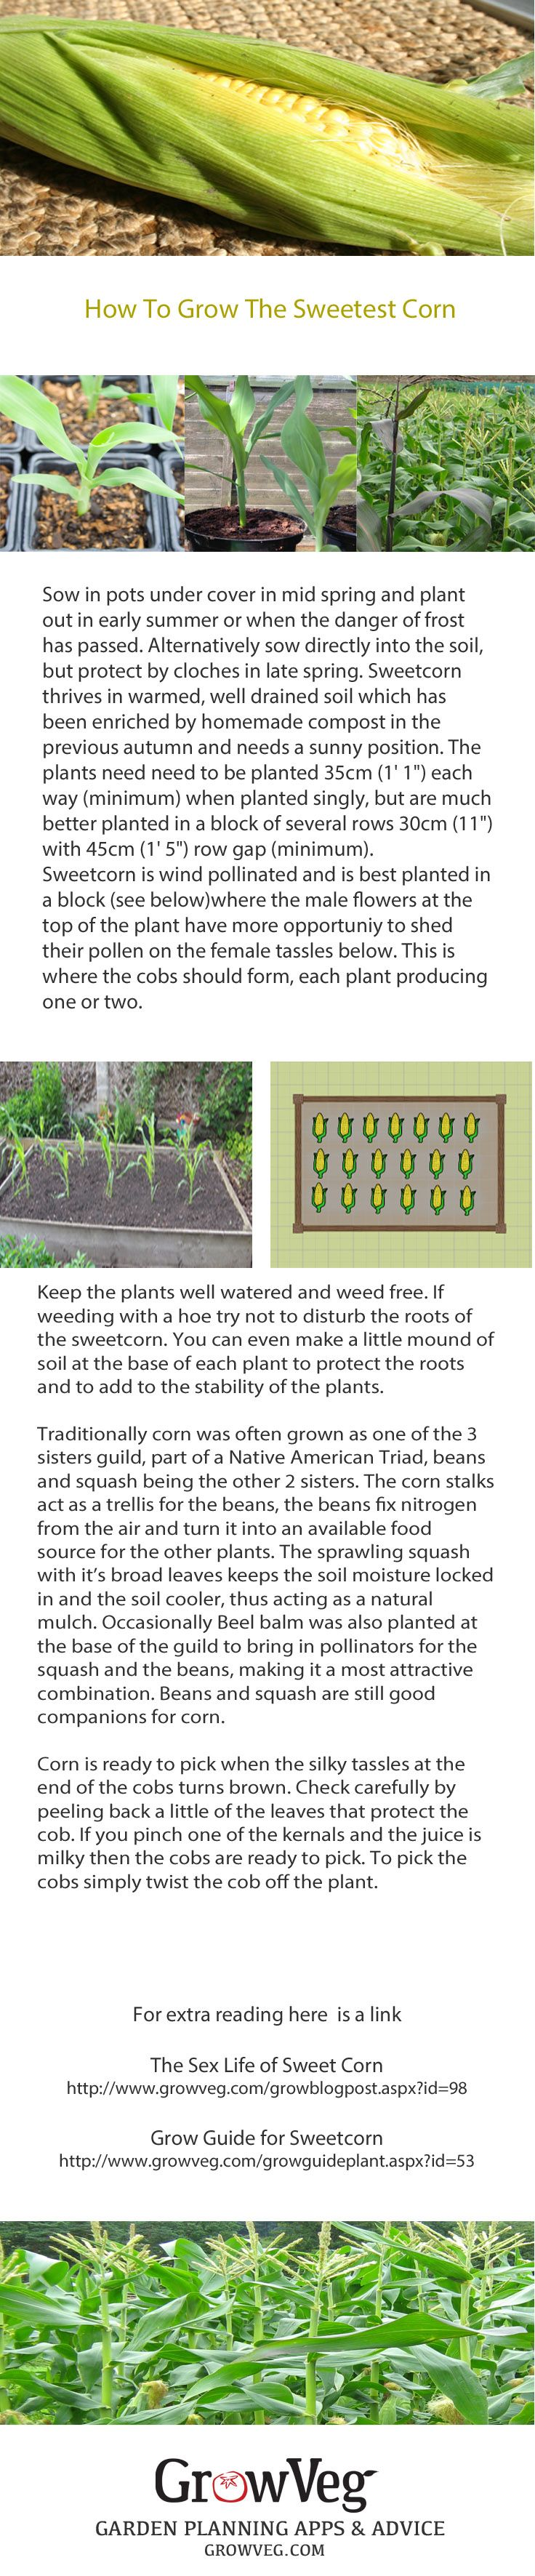 How to grow the sweetest sweetcorn. The importance of planting in a block as sweetcorn is wind pollinated. The companion planting of corn, beans and squash together as the 3 sisters guild. How to check when corn is ready to harvest and 2 useful articles to read from growveg.com about corn and how to grow it successfully. A great crop even for a small garden, a small block of 10 plants can give you that straight from the garden taste lacking in so much store bought corn.